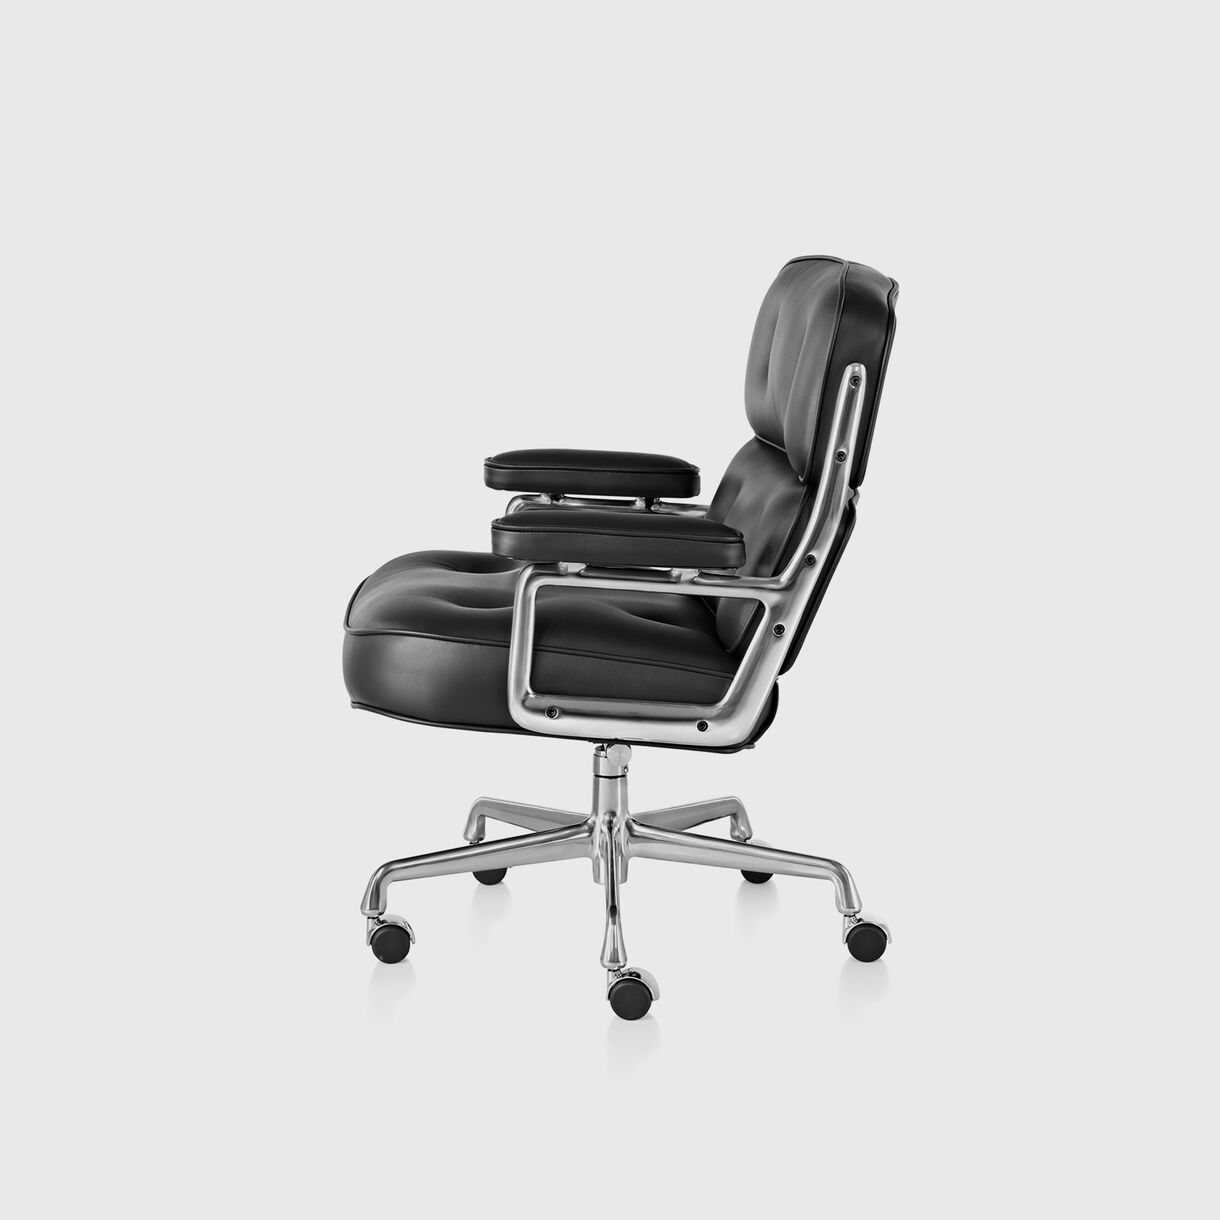 Eames Executive Chair with Casters - Black Leather & Polished Aluminium Frame